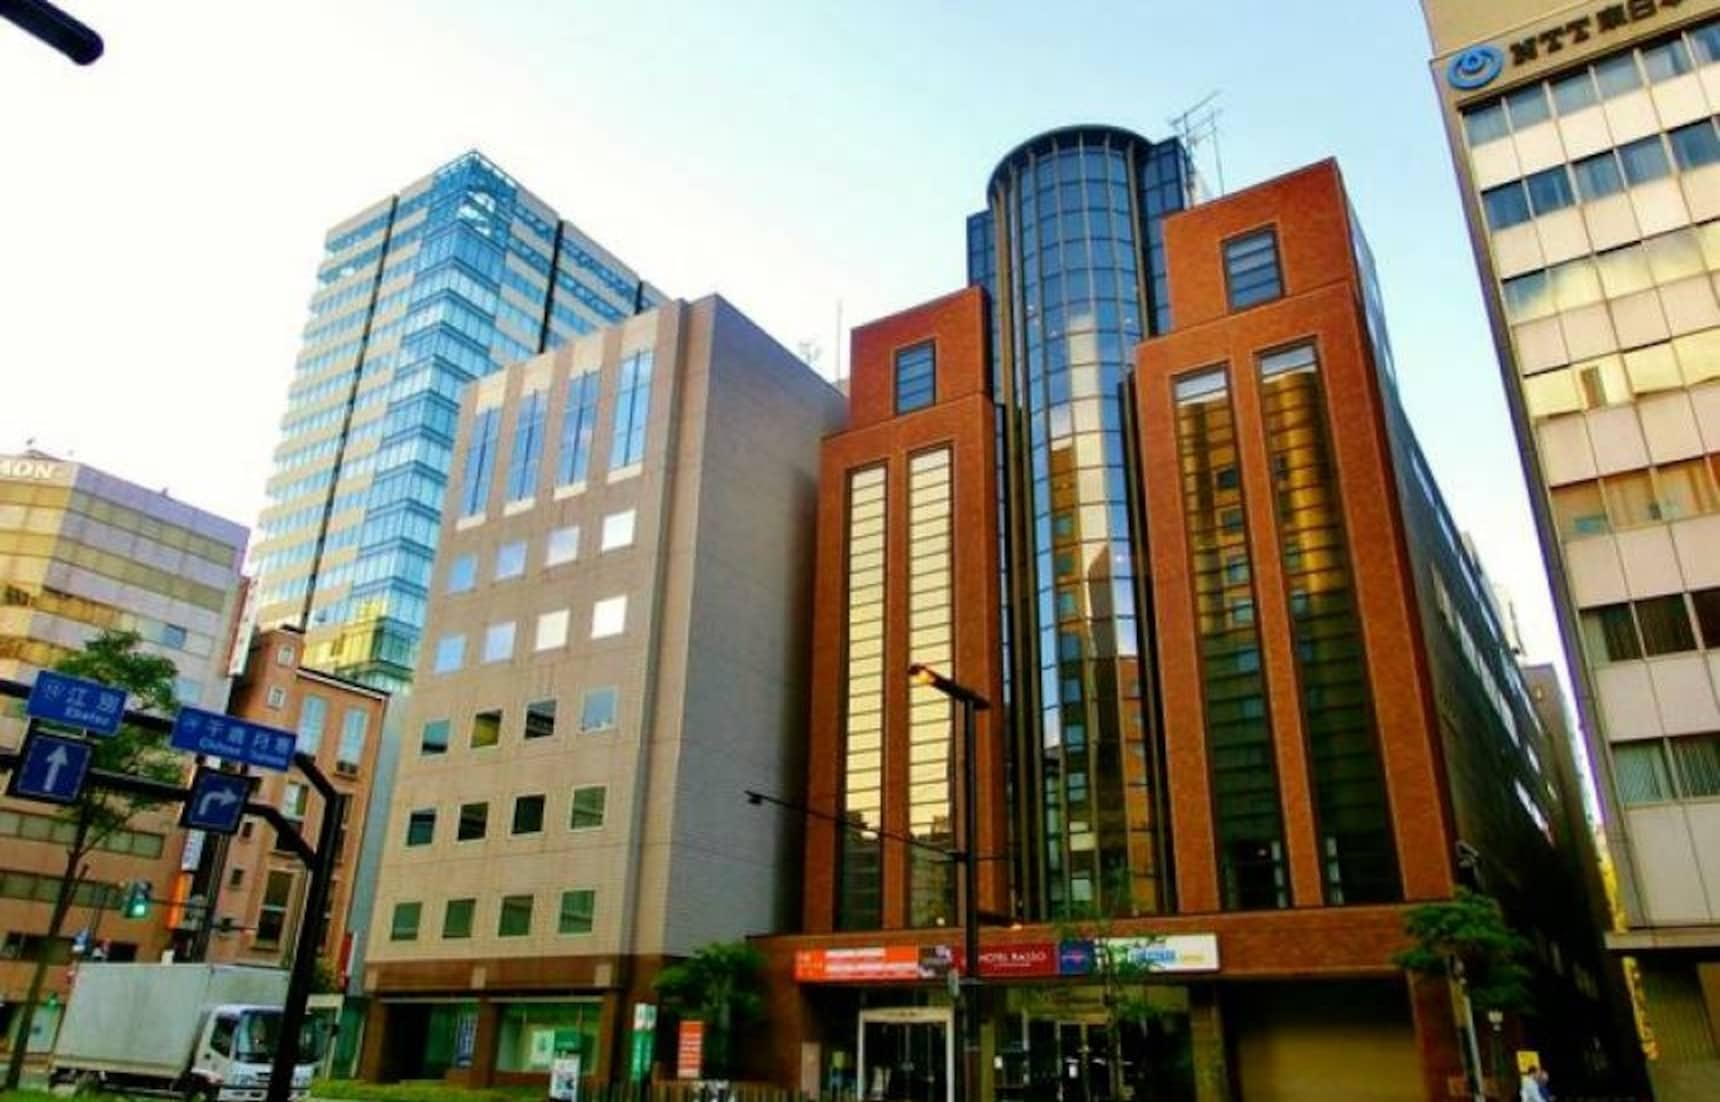 6 Budget Hotels & Hostels In Sapporo, Japan